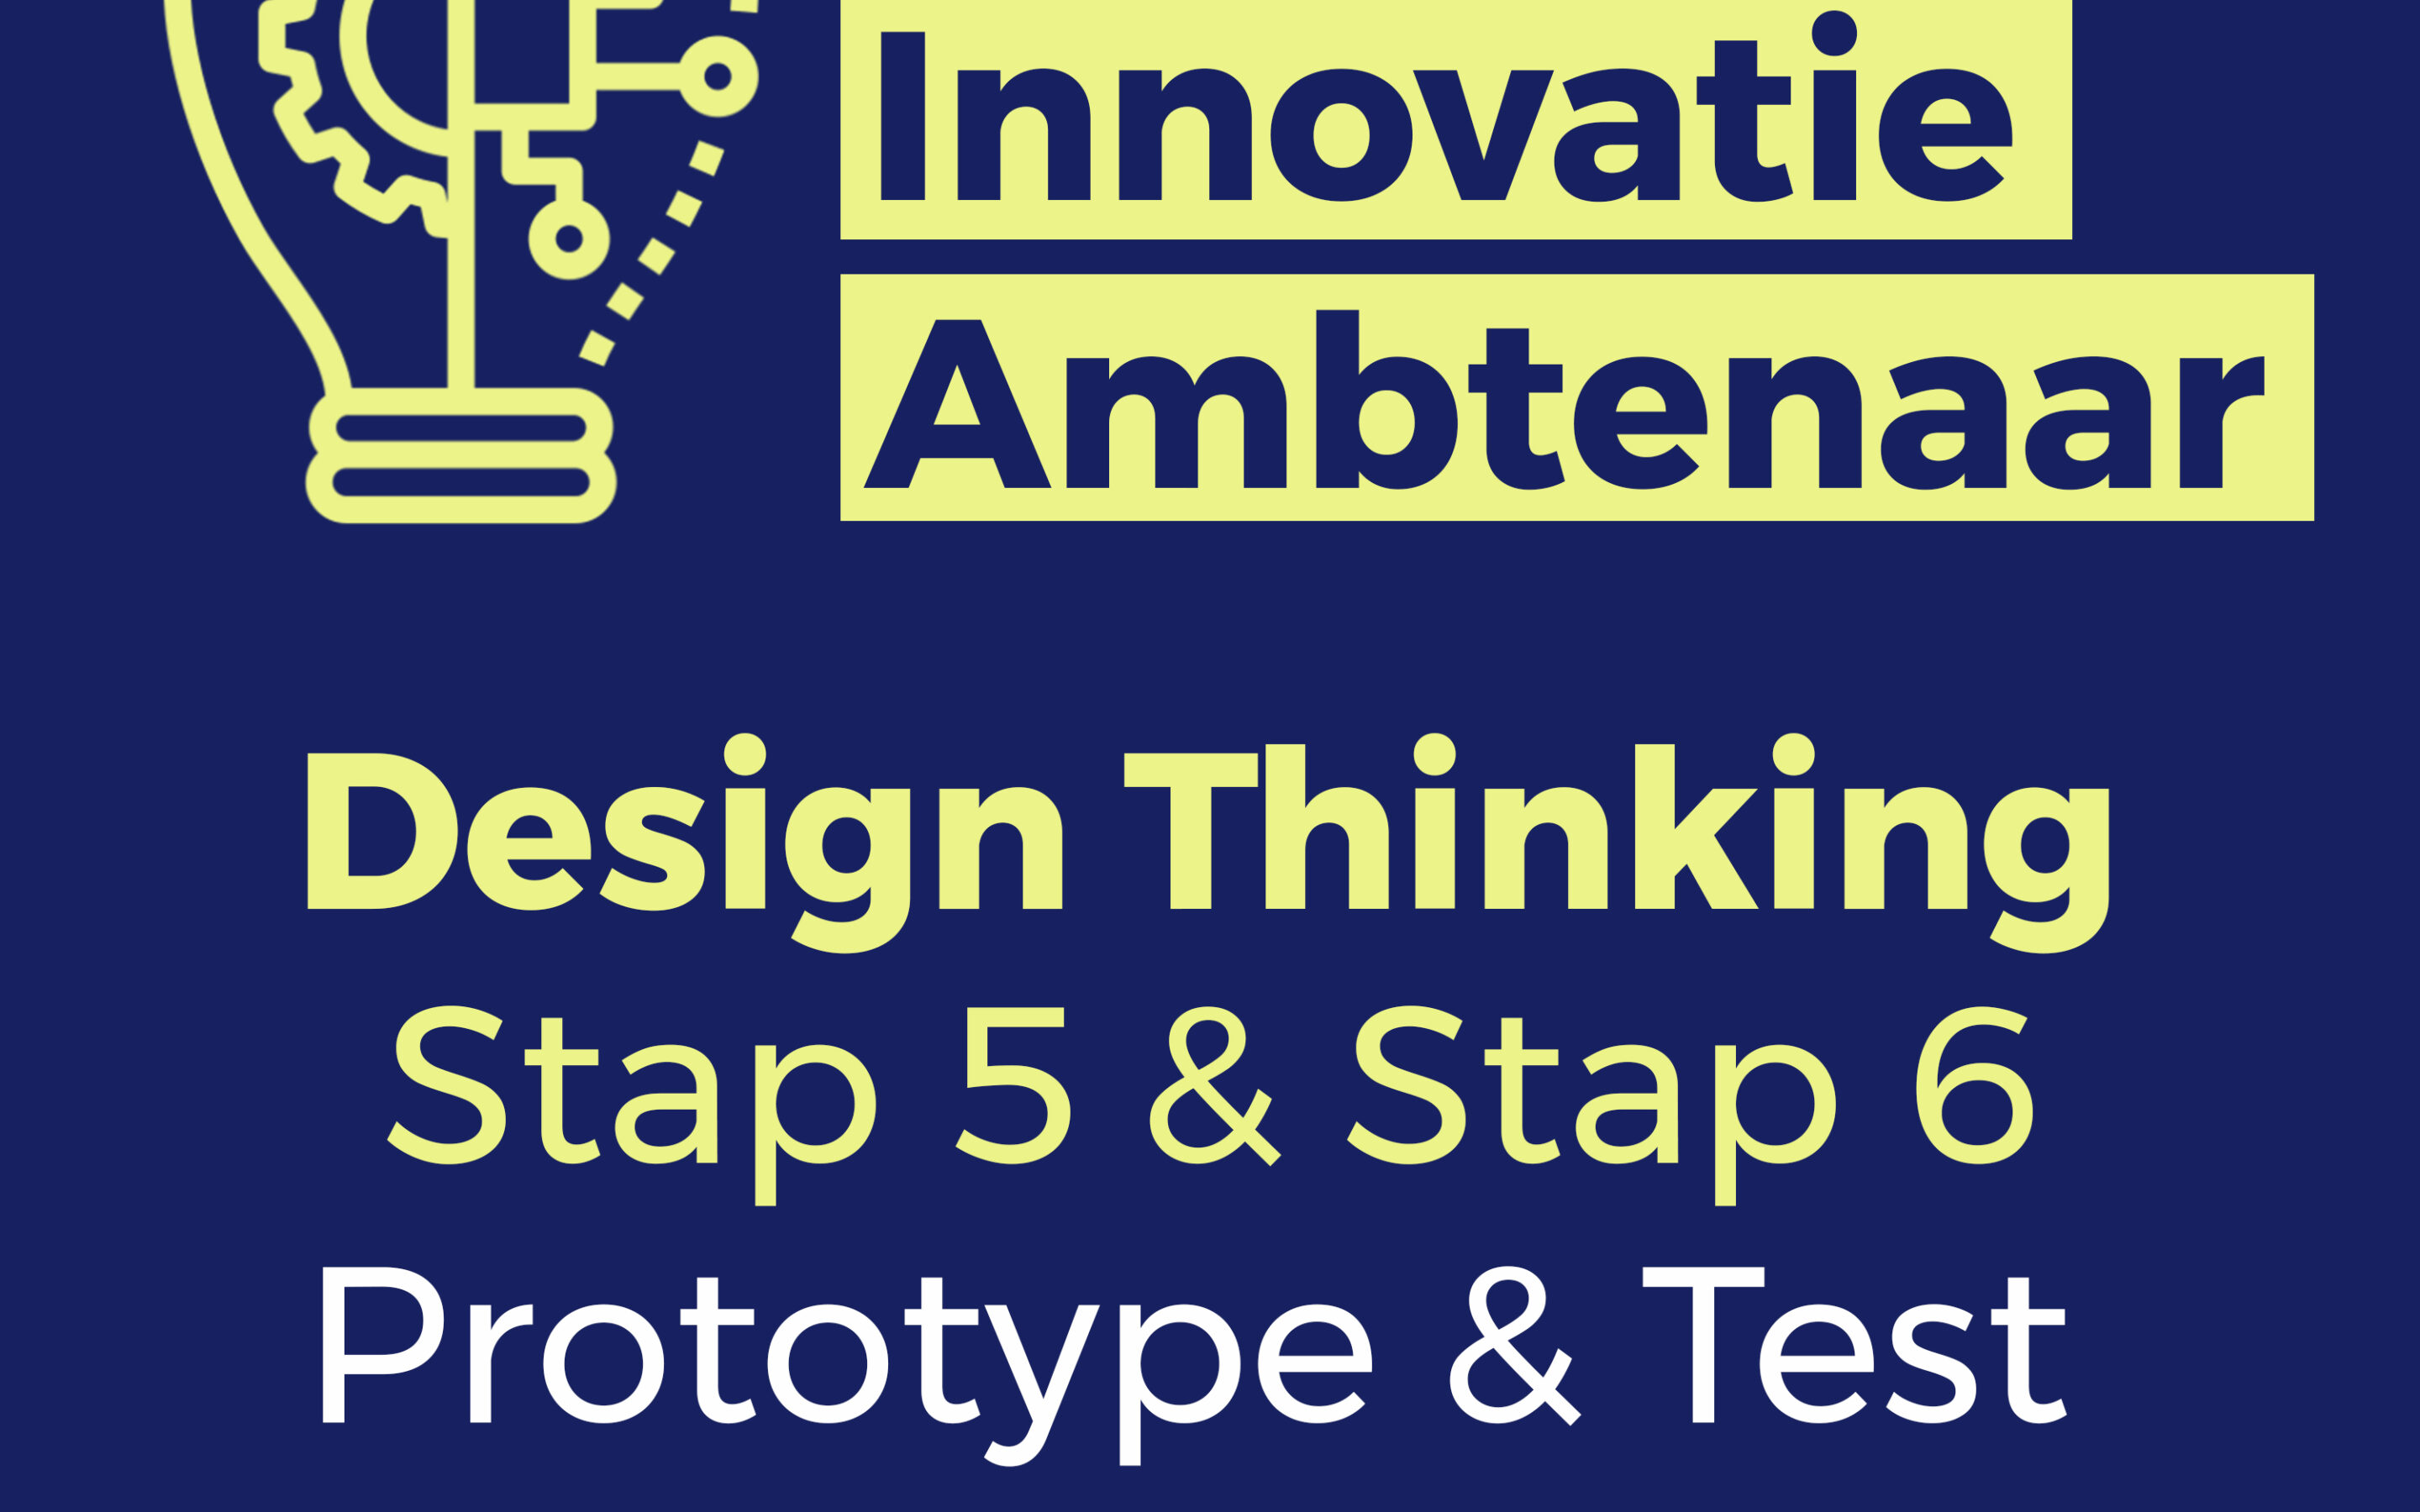 Design Thinking – Stap 5 en stap 6: Prototype en Test